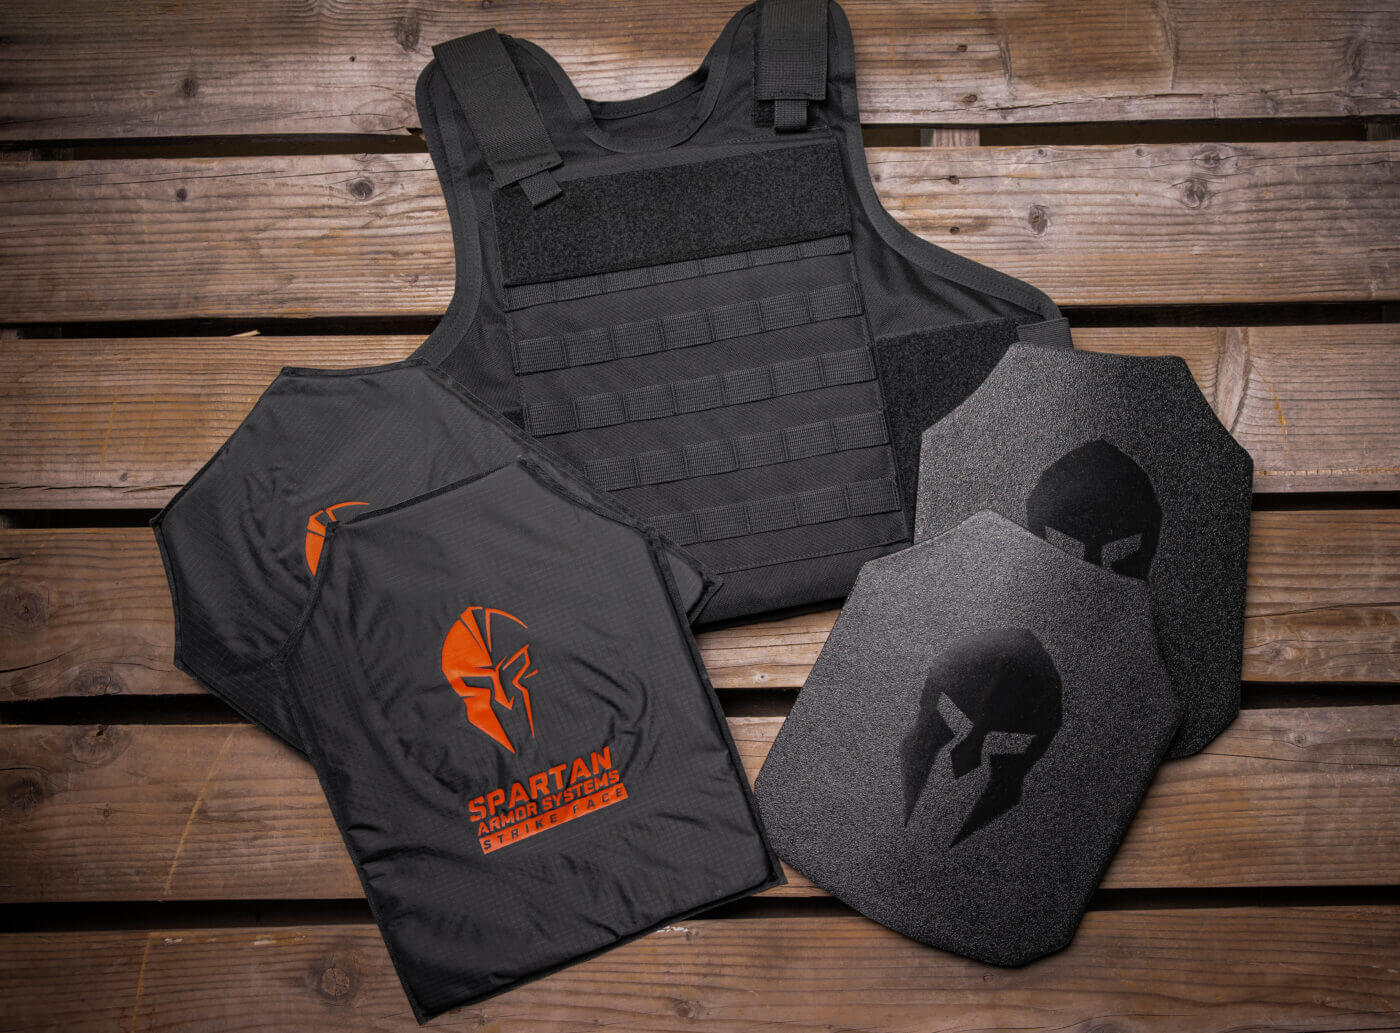 Various body armor available in 2021